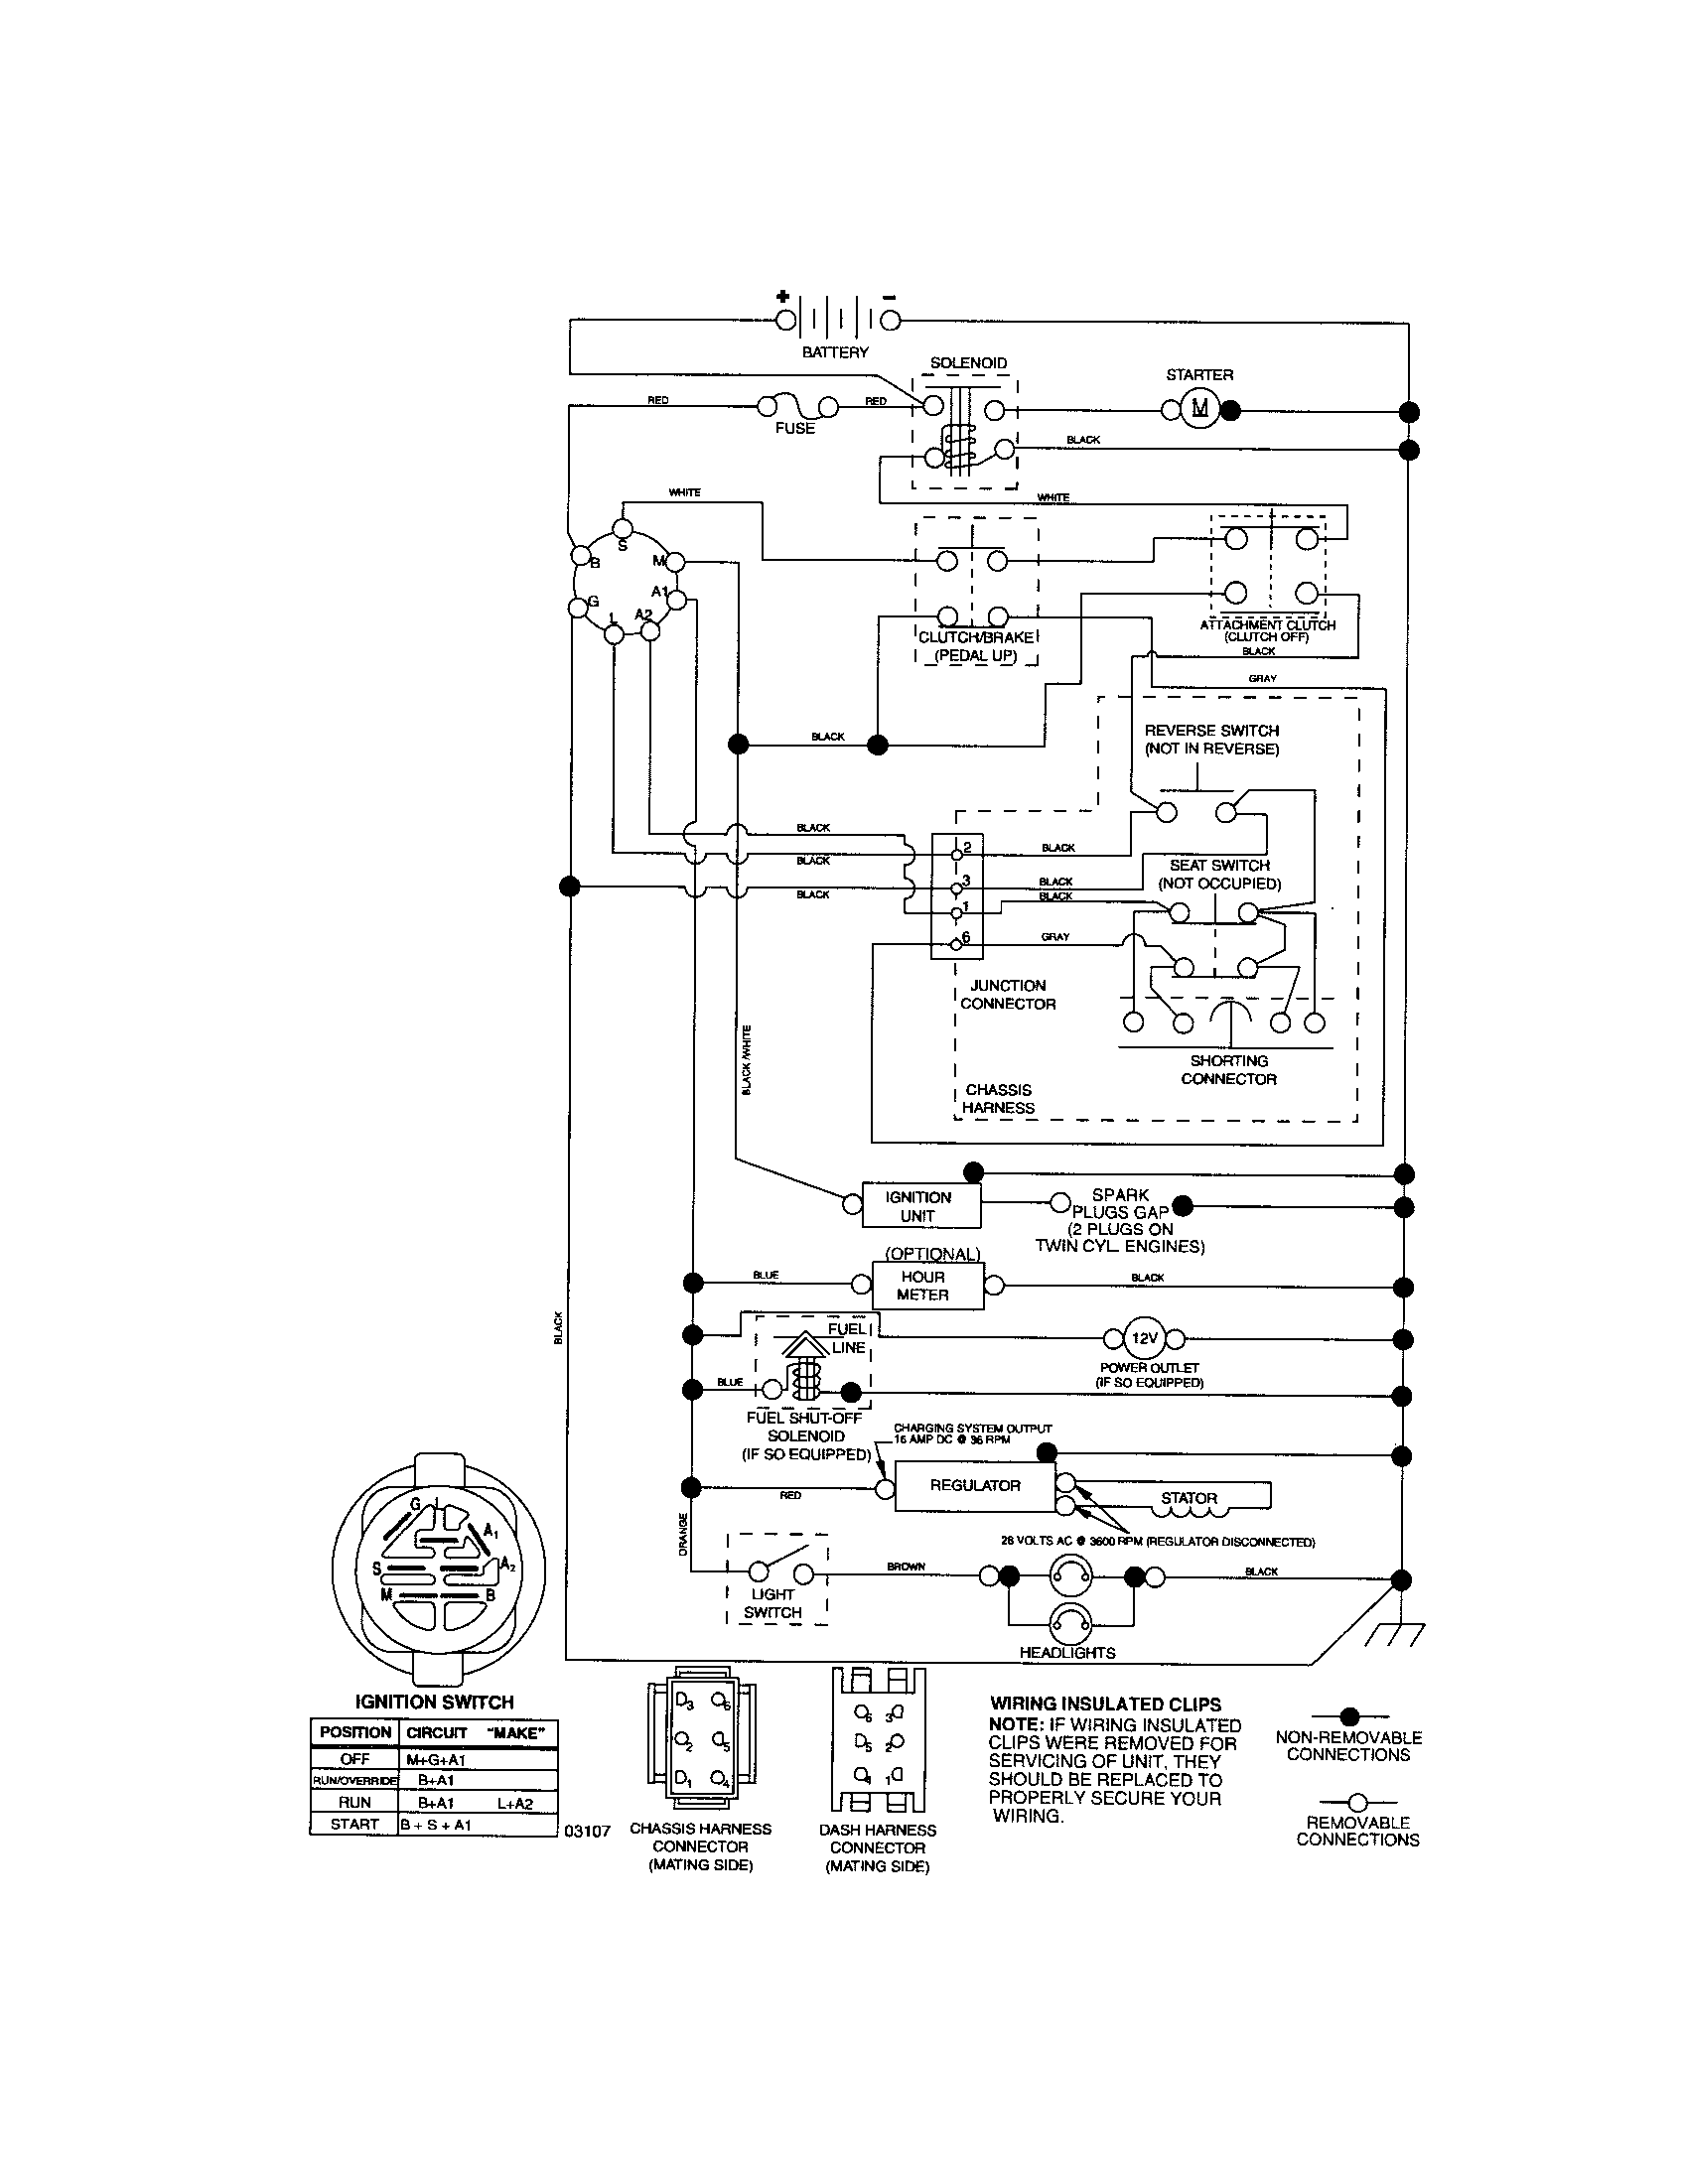 6af5f1447fd13c8443376822ddc1e105 craftsman riding mower electrical diagram wiring diagram craftsman lawn tractor wiring diagram at creativeand.co